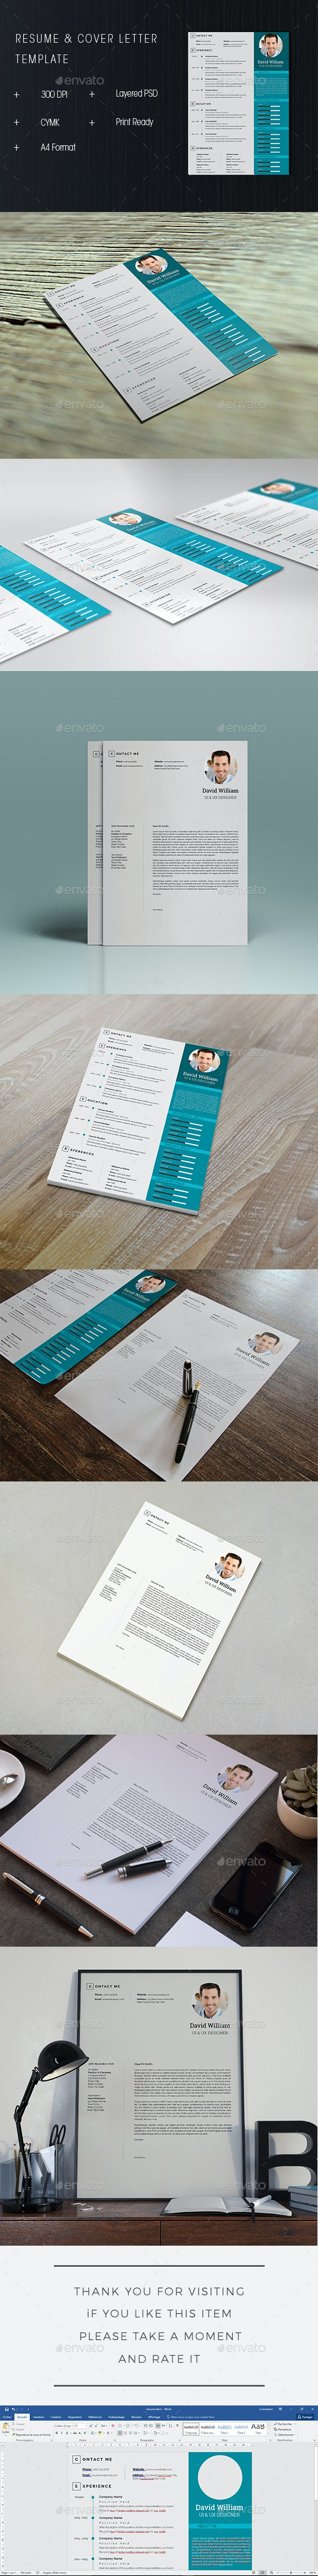 Resum Template & Cover Letter - Resumes Stationery